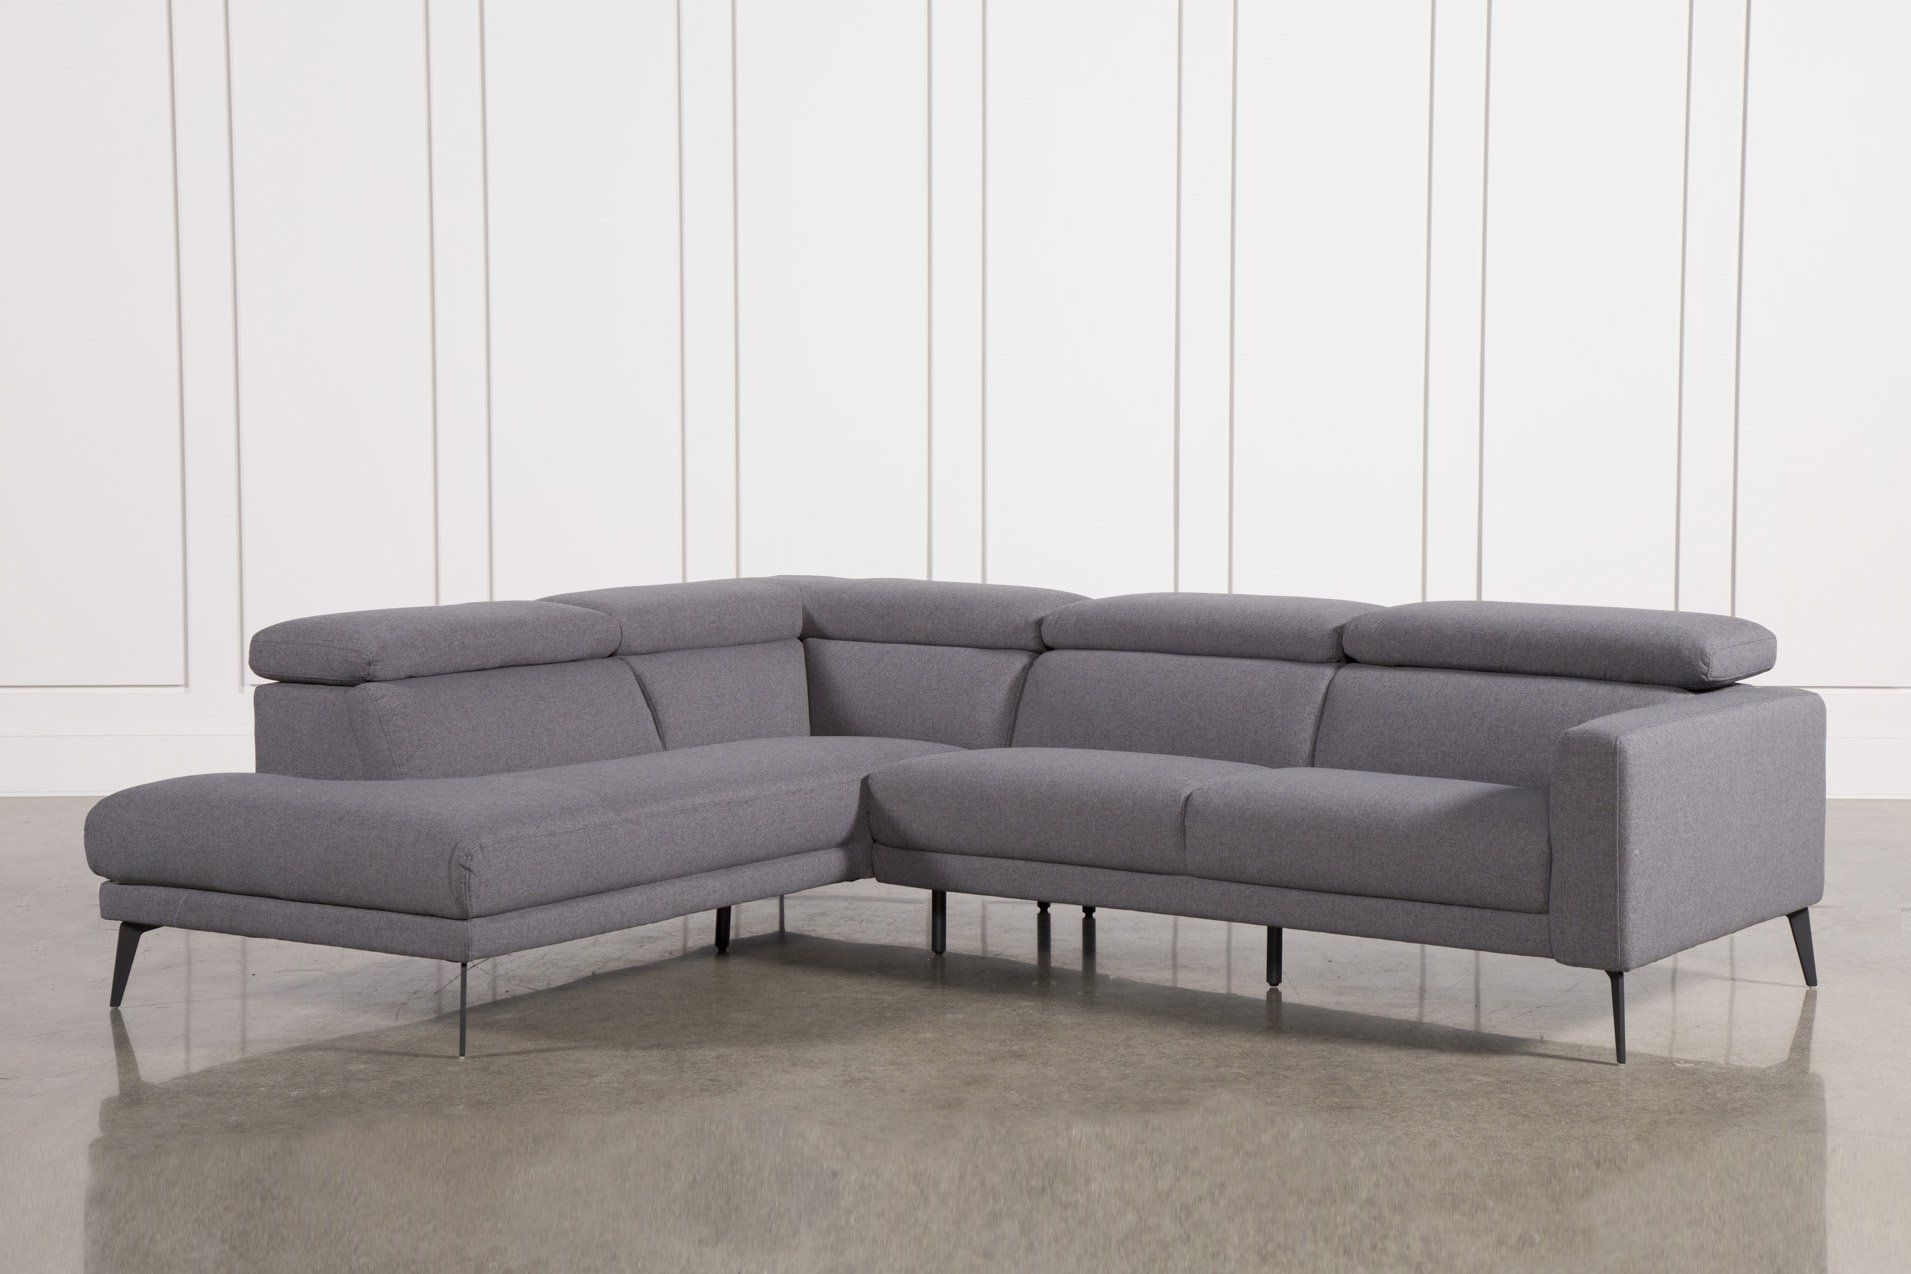 Ikea – Norsborg, Sofa, Edum Beige, , Large Or Small, Color With Cosmos Grey 2 Piece Sectionals With Laf Chaise (View 15 of 25)